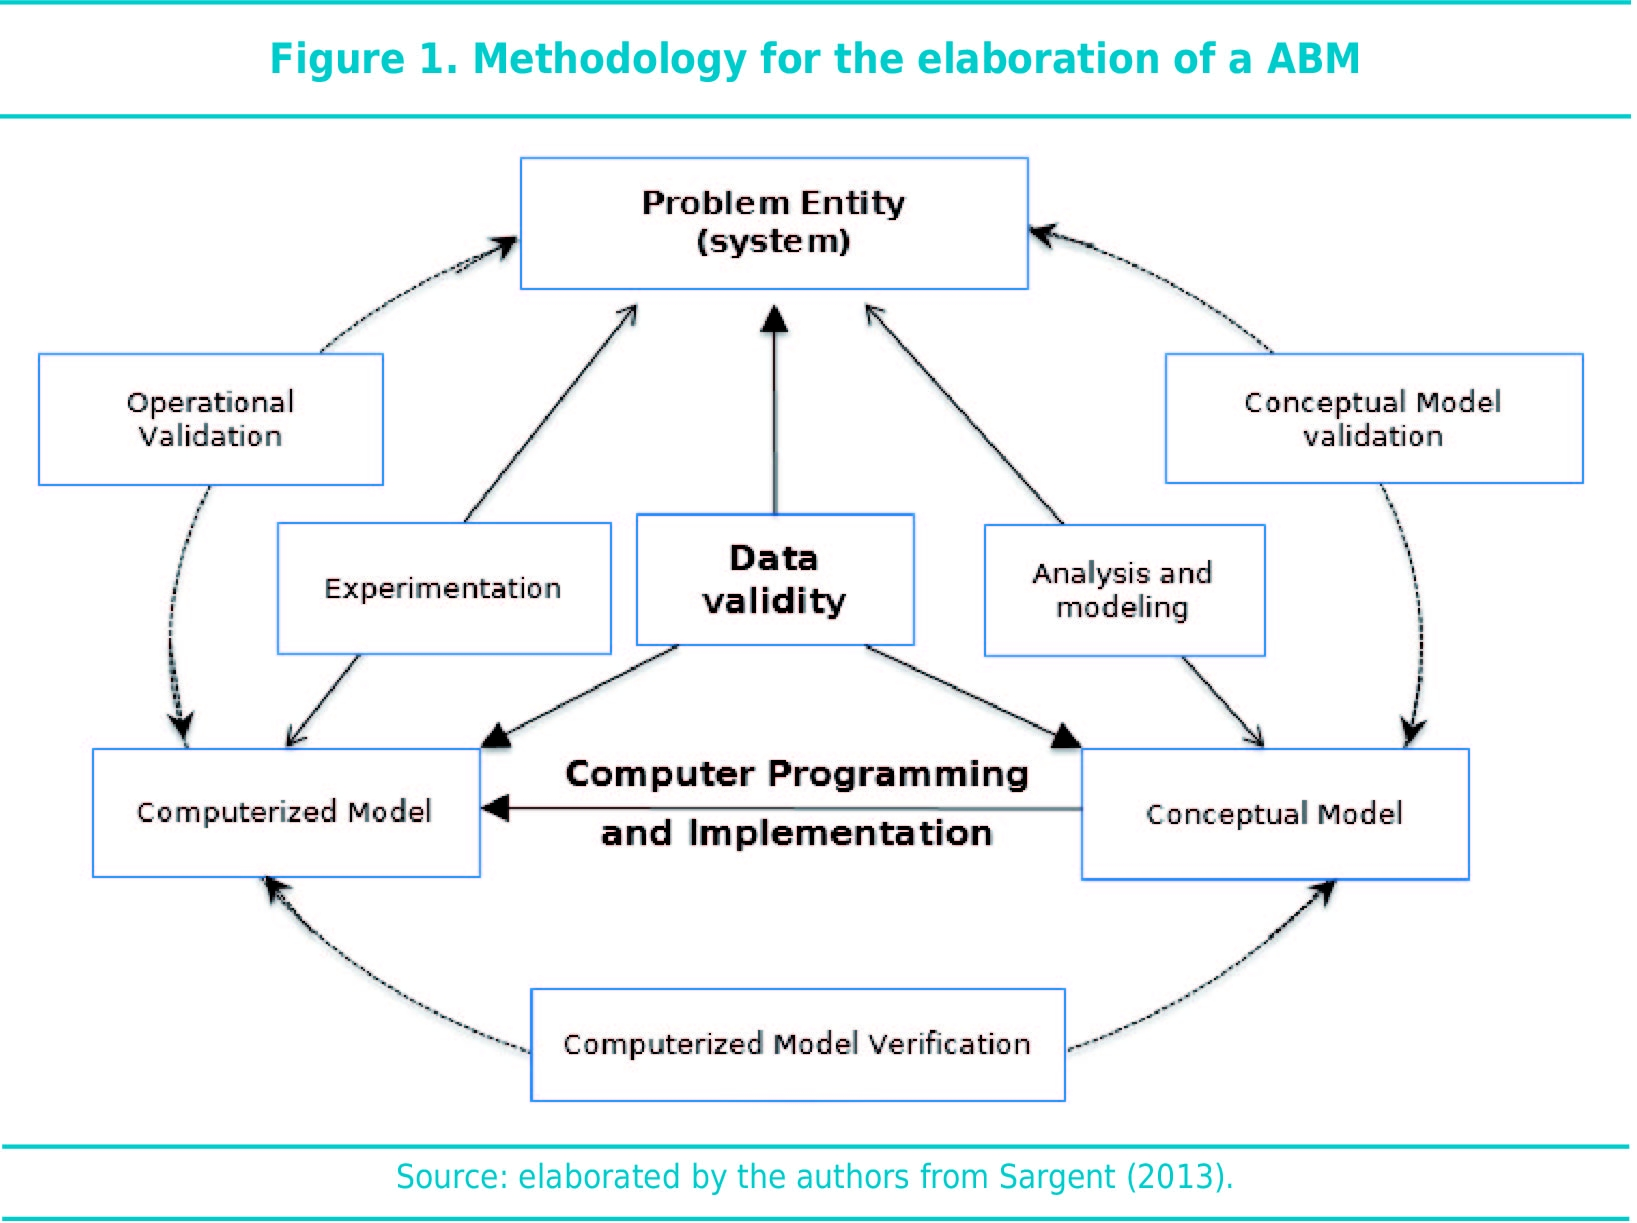 Methodology for the elaboration of a ABM